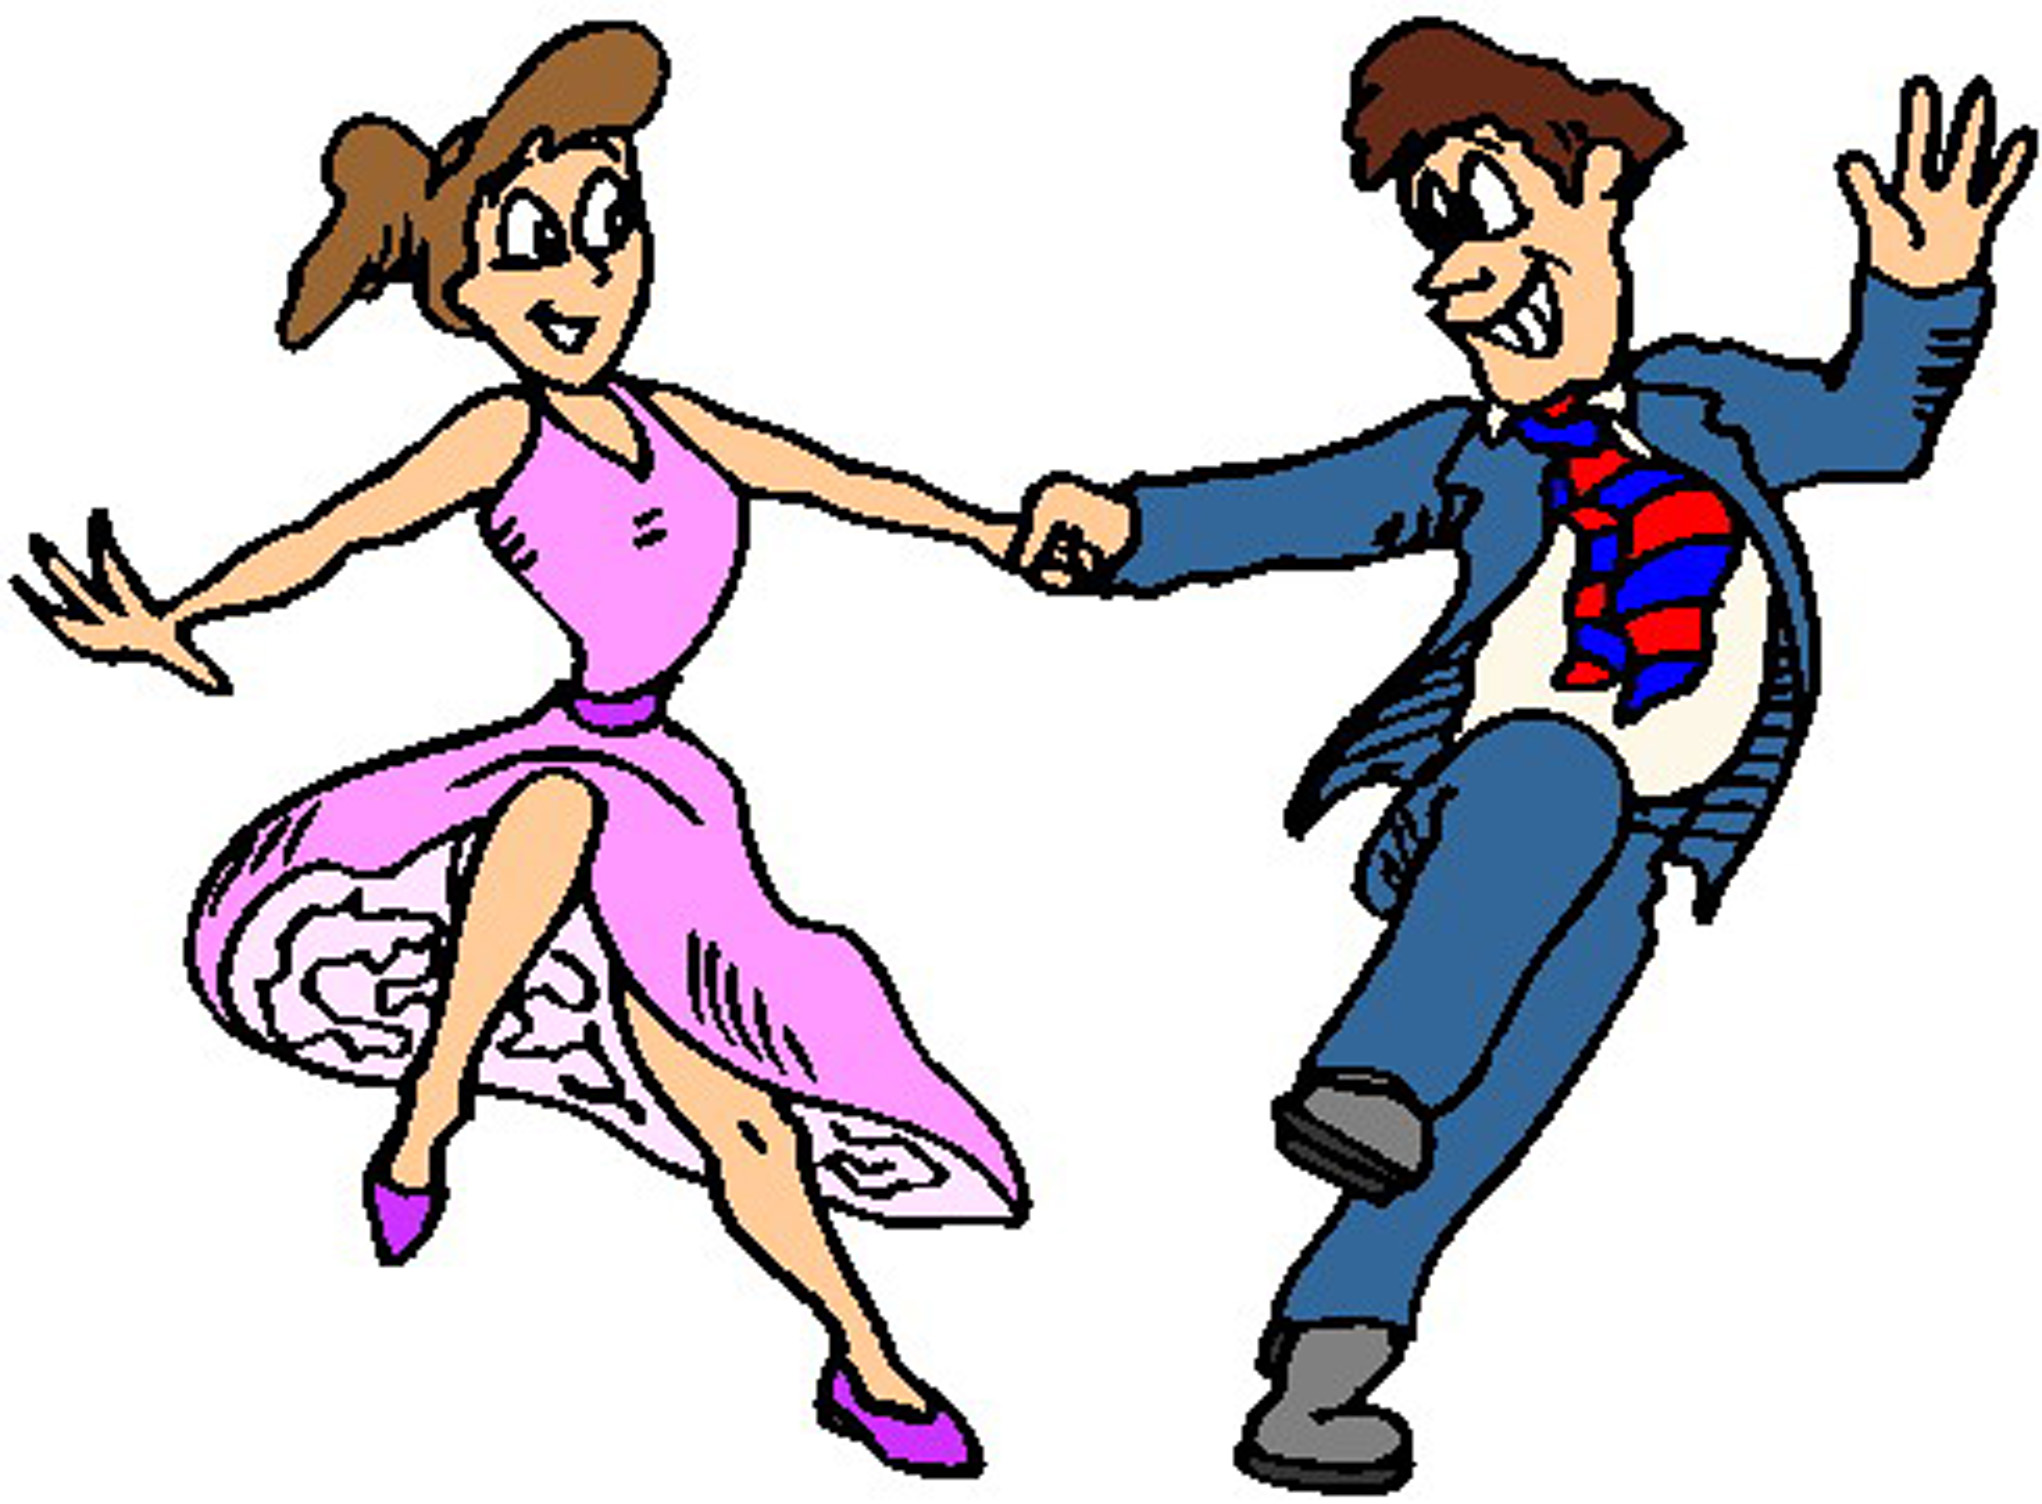 Kick Up Your Heels besides Humor likewise Laughter moreover Maxine Cartoons Aging together with 382946774542033563. on old folks cartoons party